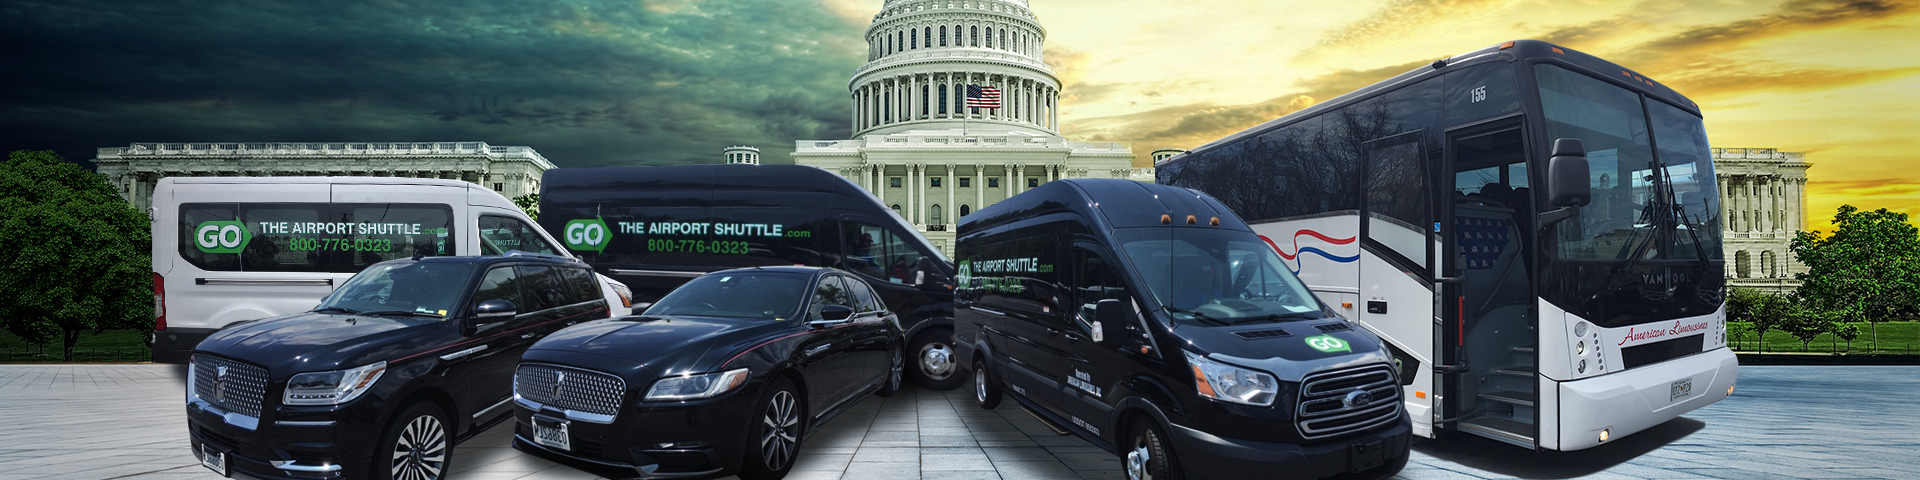 BWI Airport to Washington DC Shuttle | The Airport Shuttle